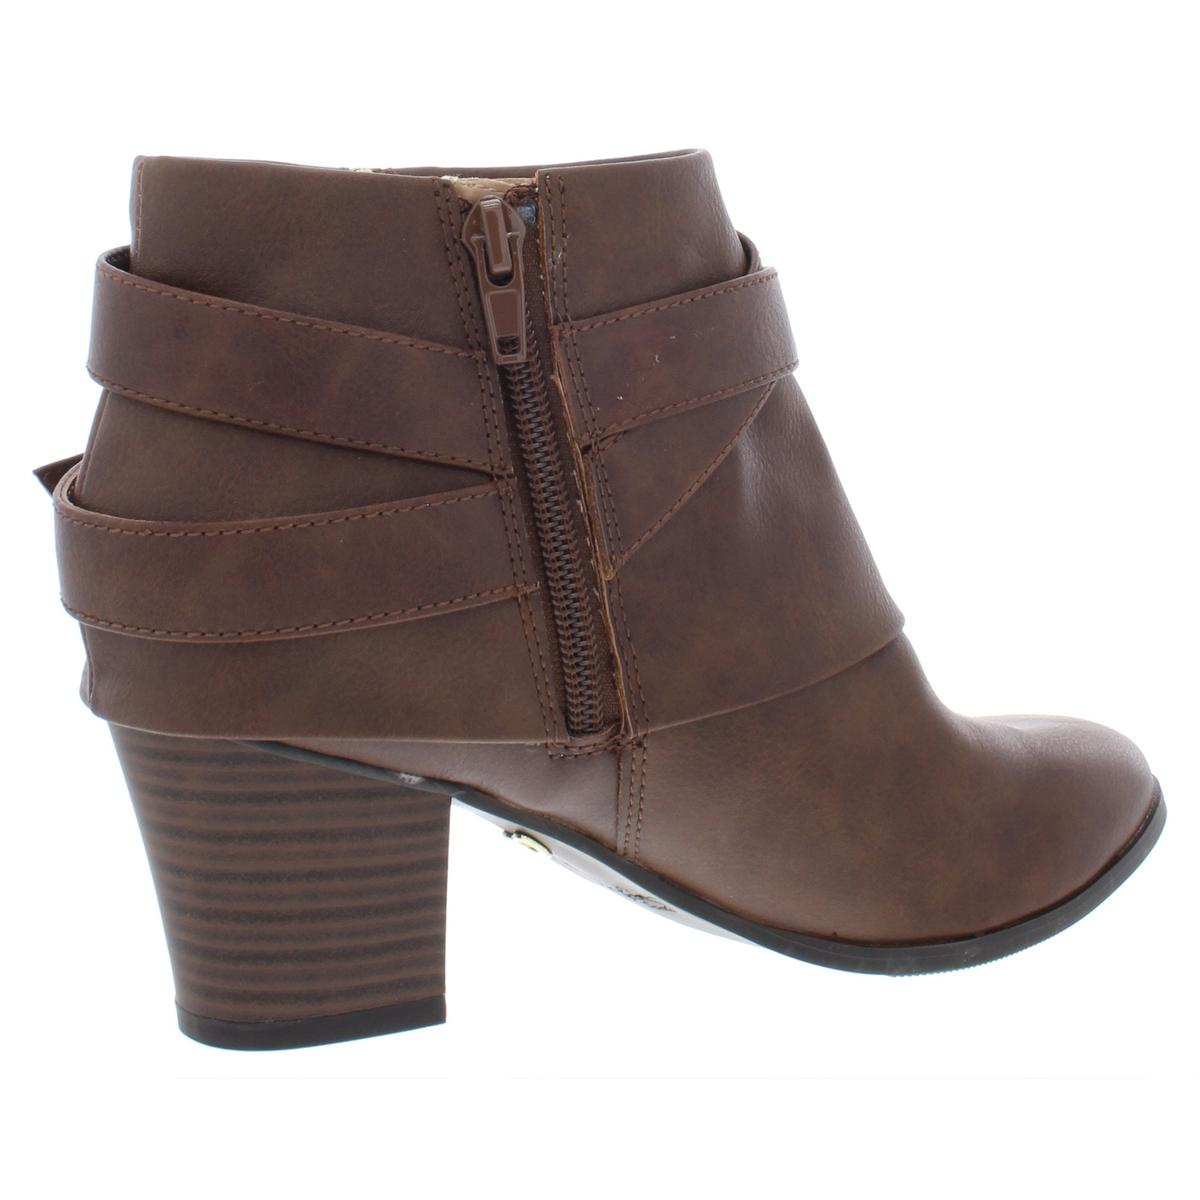 Thalia Sodi Womens Tully Faux Leather Block Heel Ankle Booties Shoes BHFO 9937